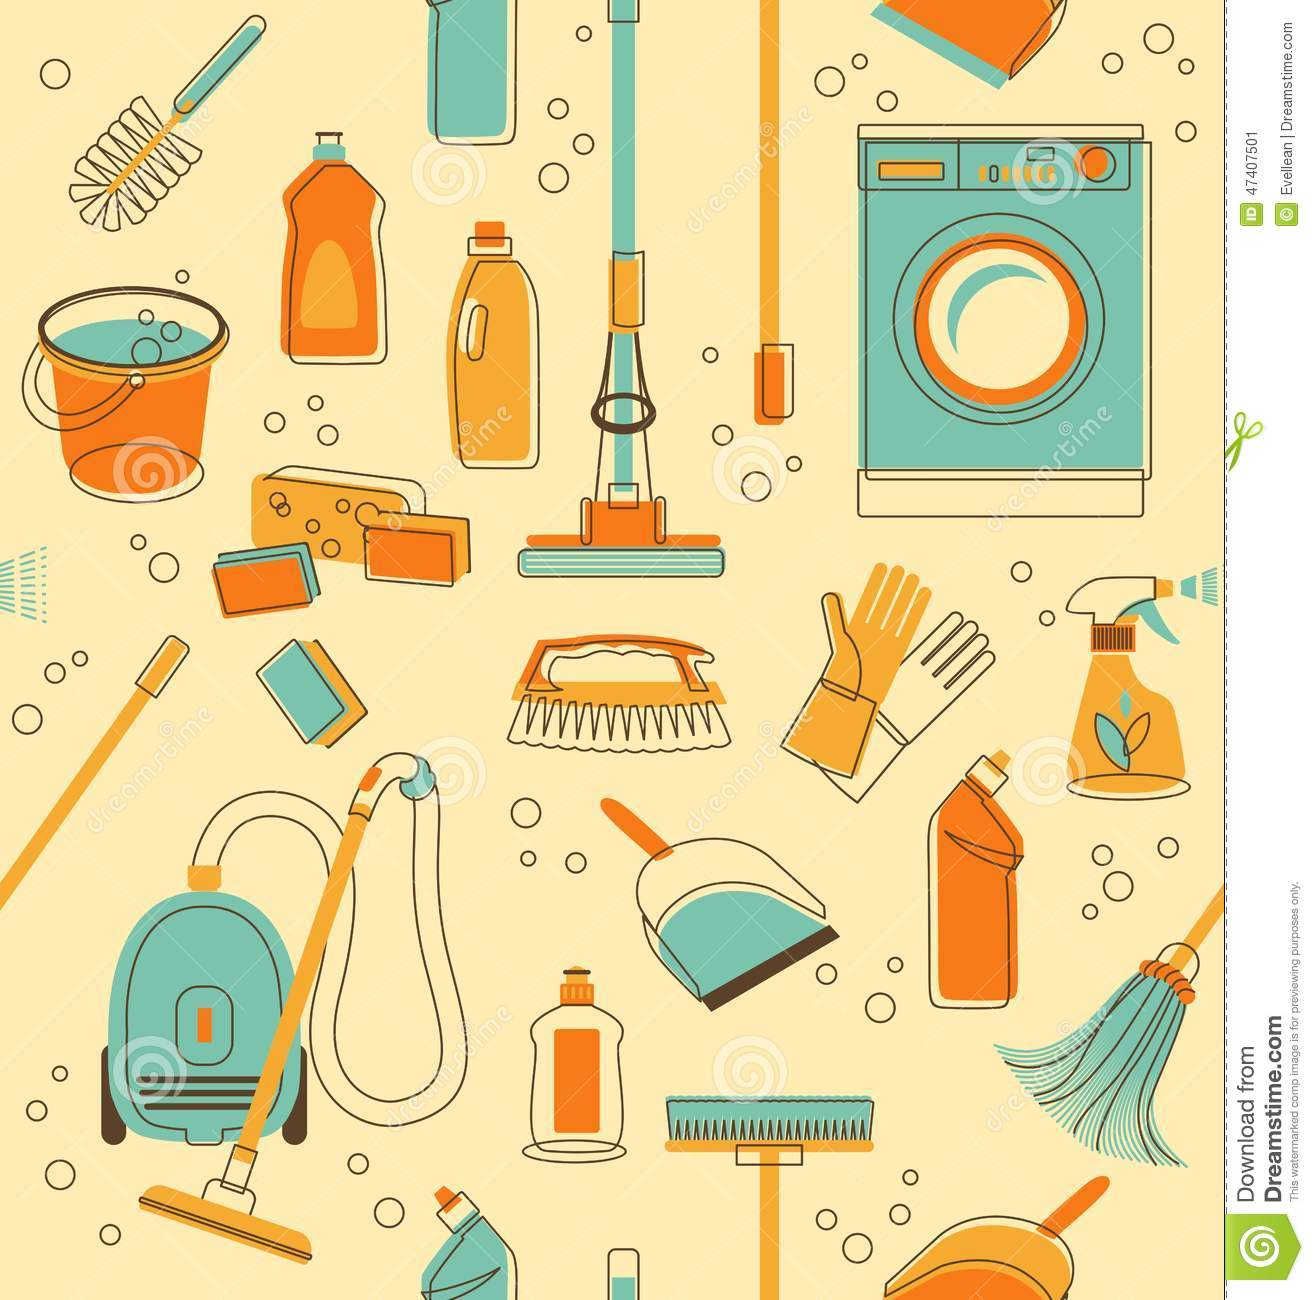 House Cleaning Tools Seamless Pattern Vector Illustration